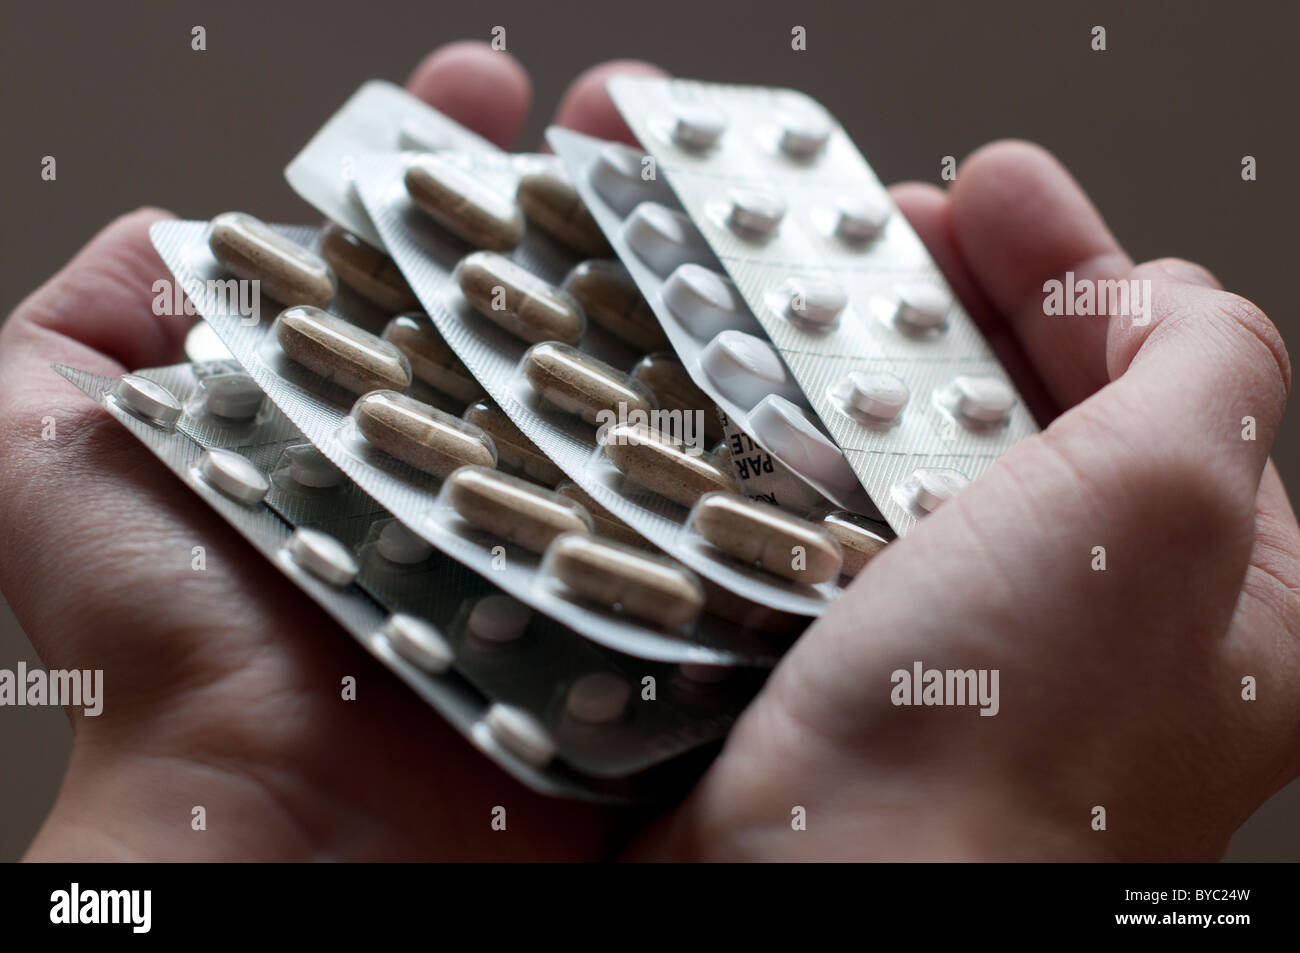 Hands holding prescription pills Photo Stock